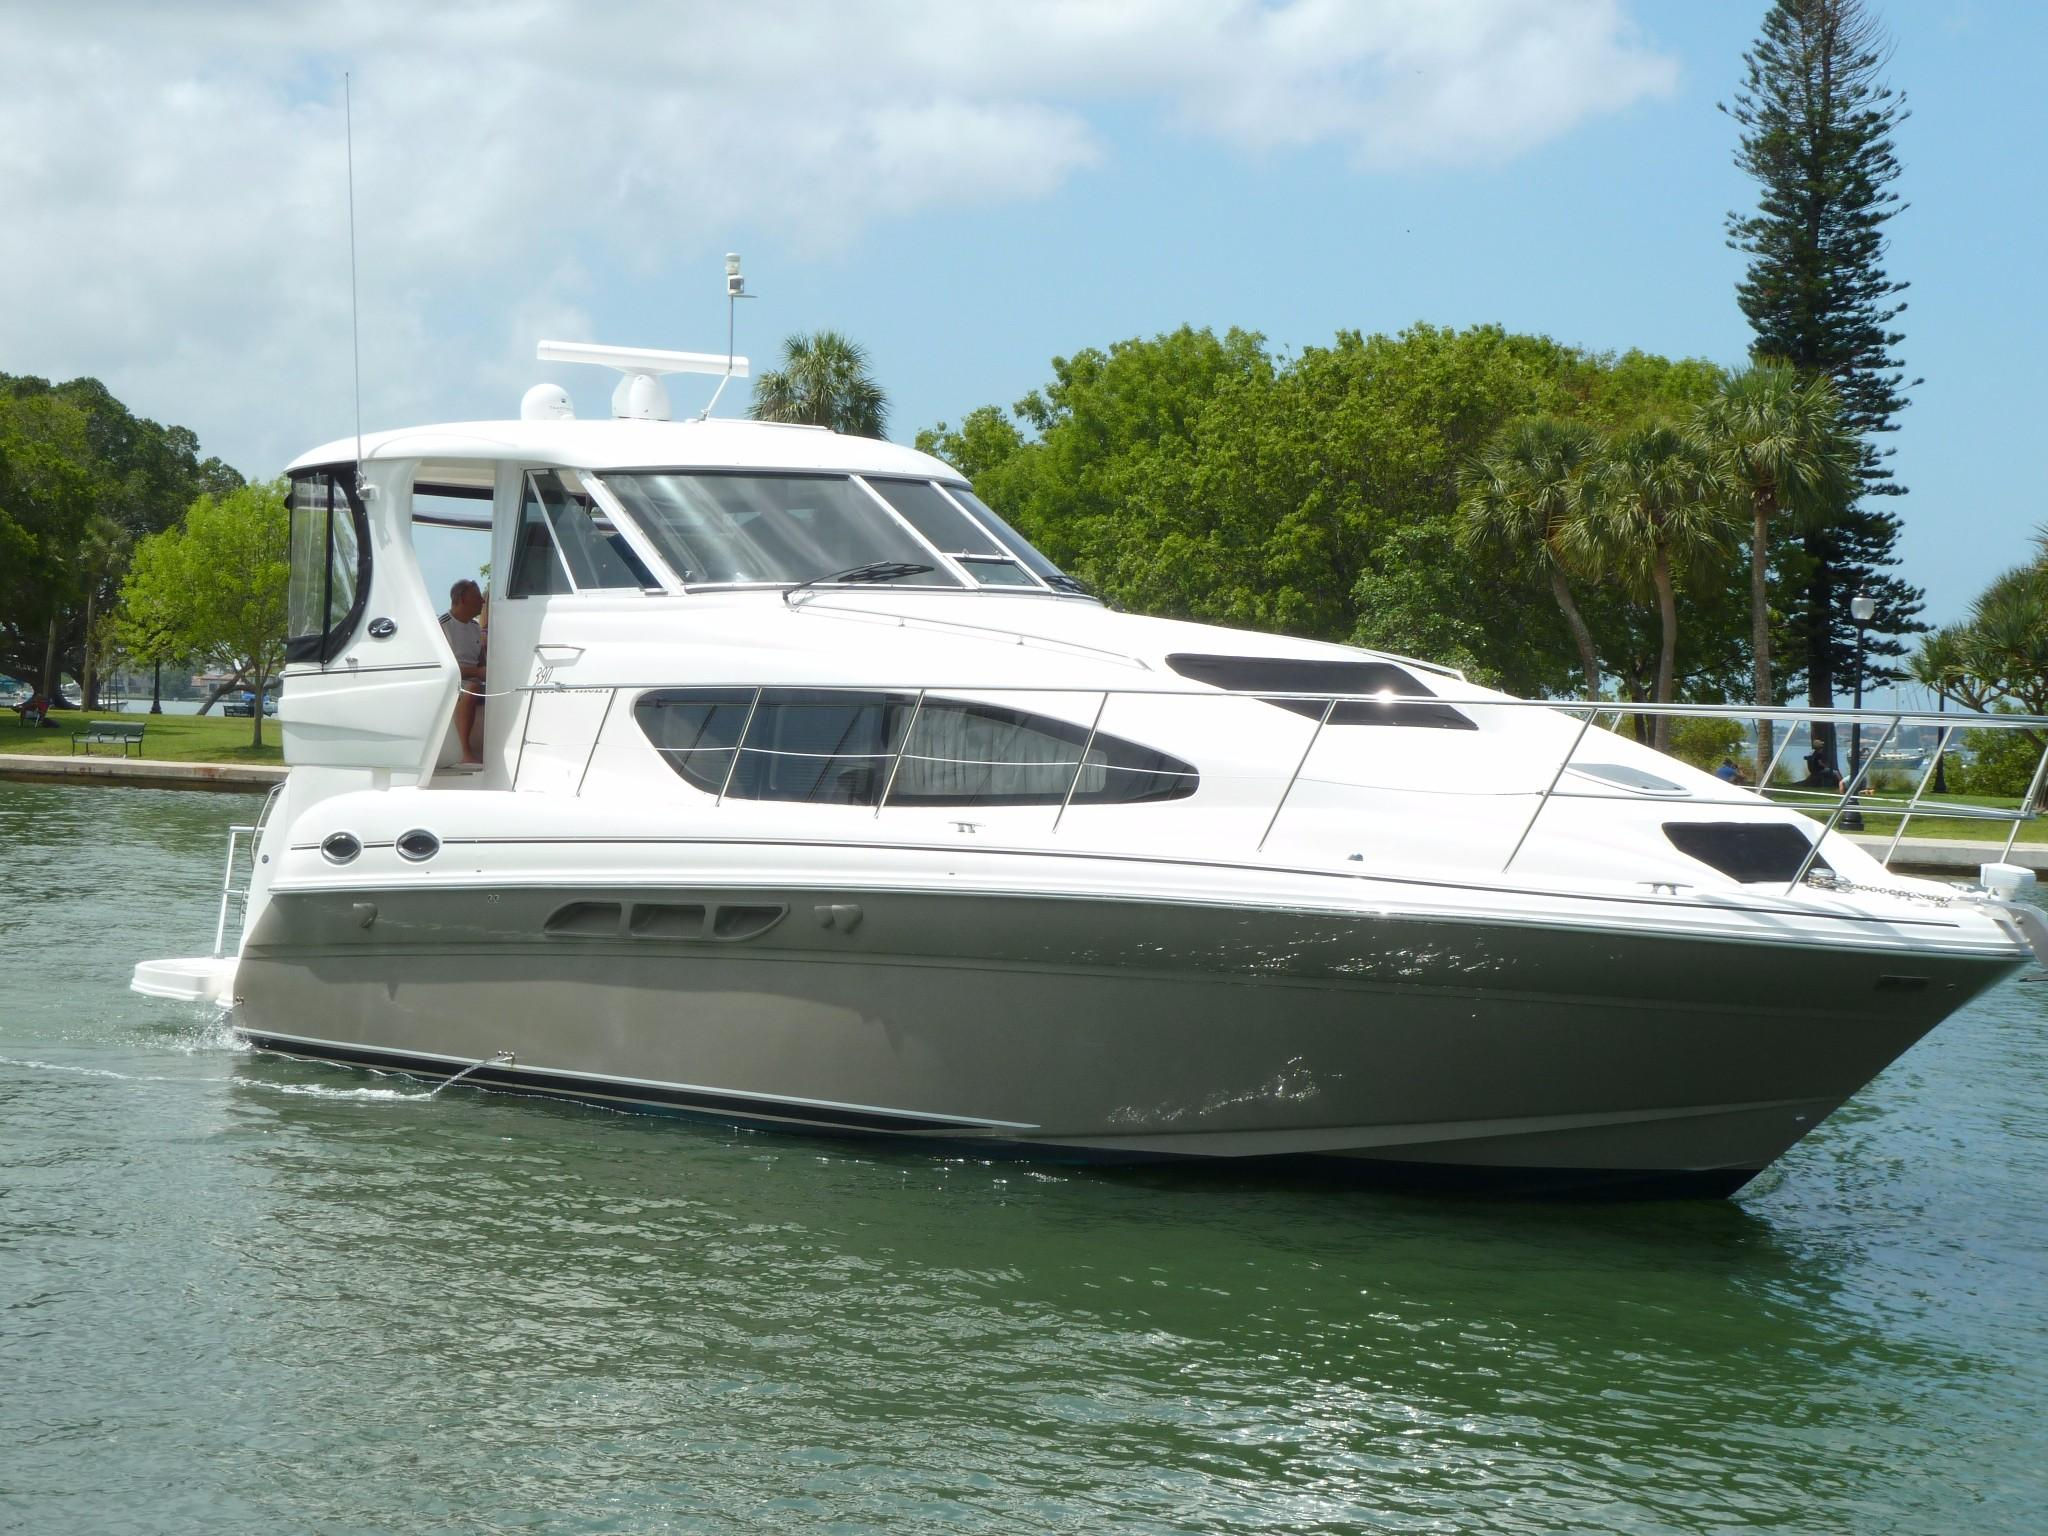 Inventory Of Used Boats From Sarasota Yacht